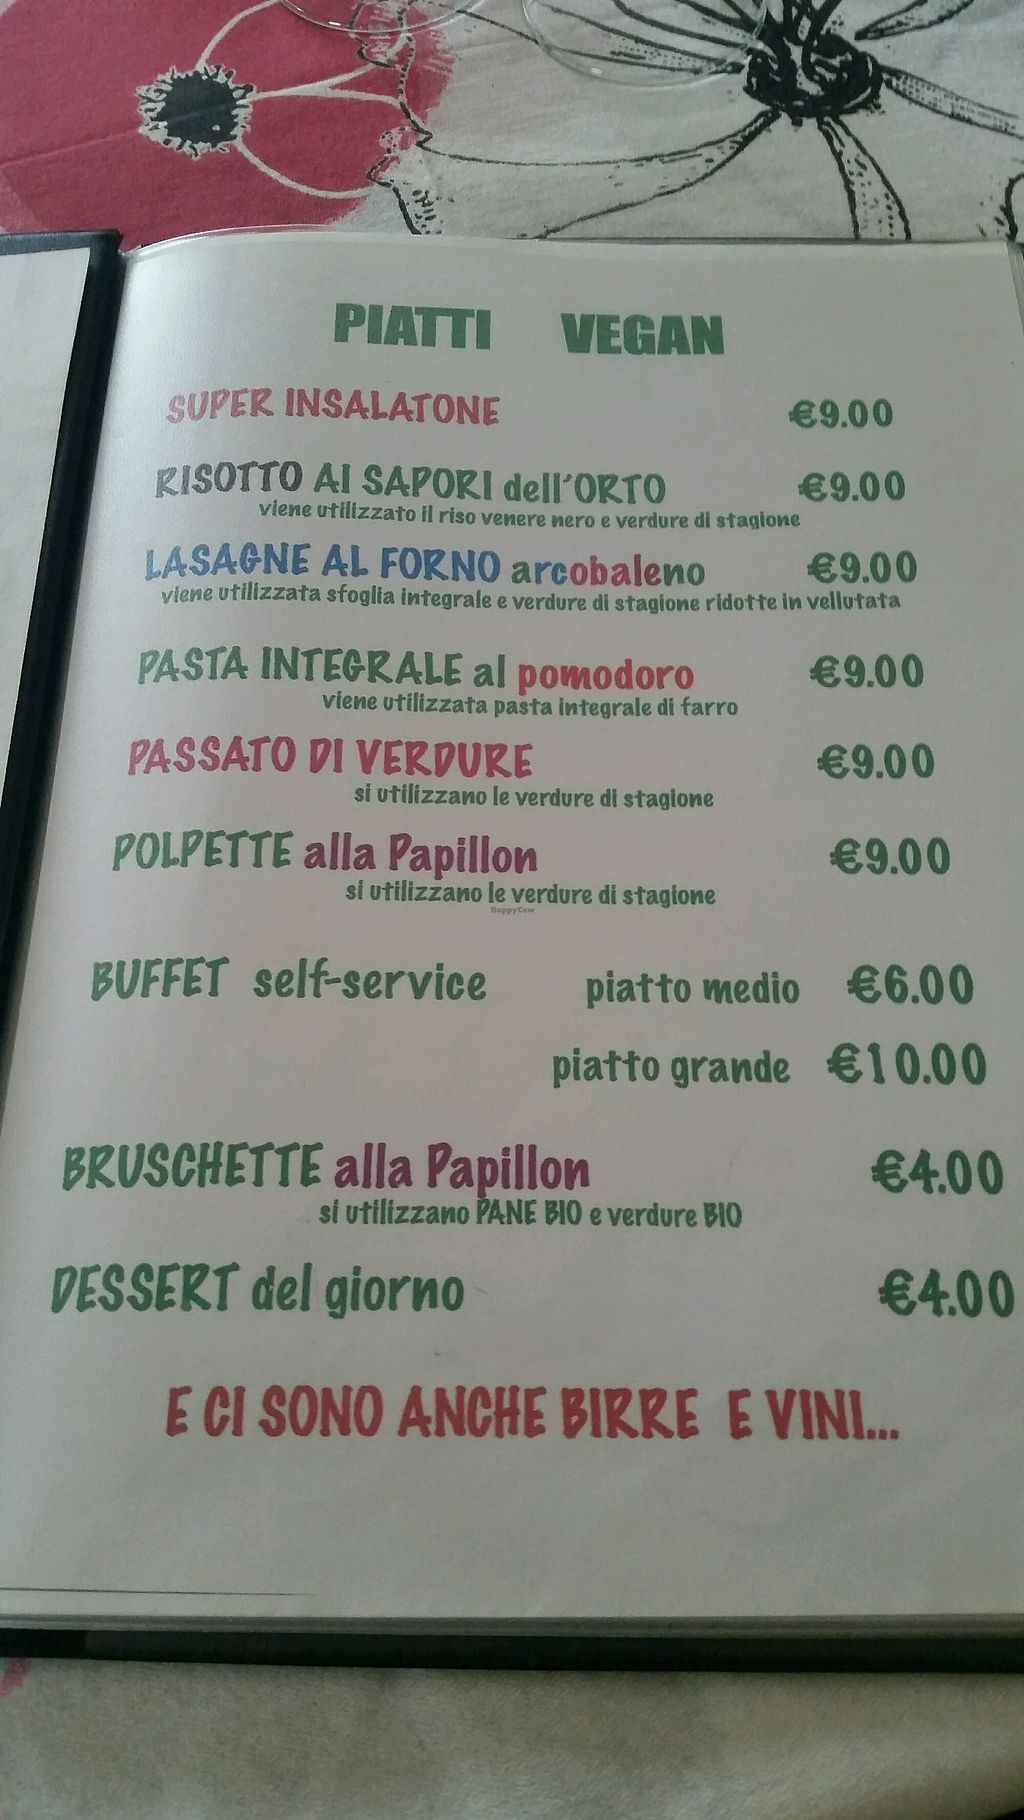 """Photo of Papillon Pizzeria Ristorante  by <a href=""""/members/profile/Labarban"""">Labarban</a> <br/>menu <br/> October 19, 2017  - <a href='/contact/abuse/image/55903/316563'>Report</a>"""